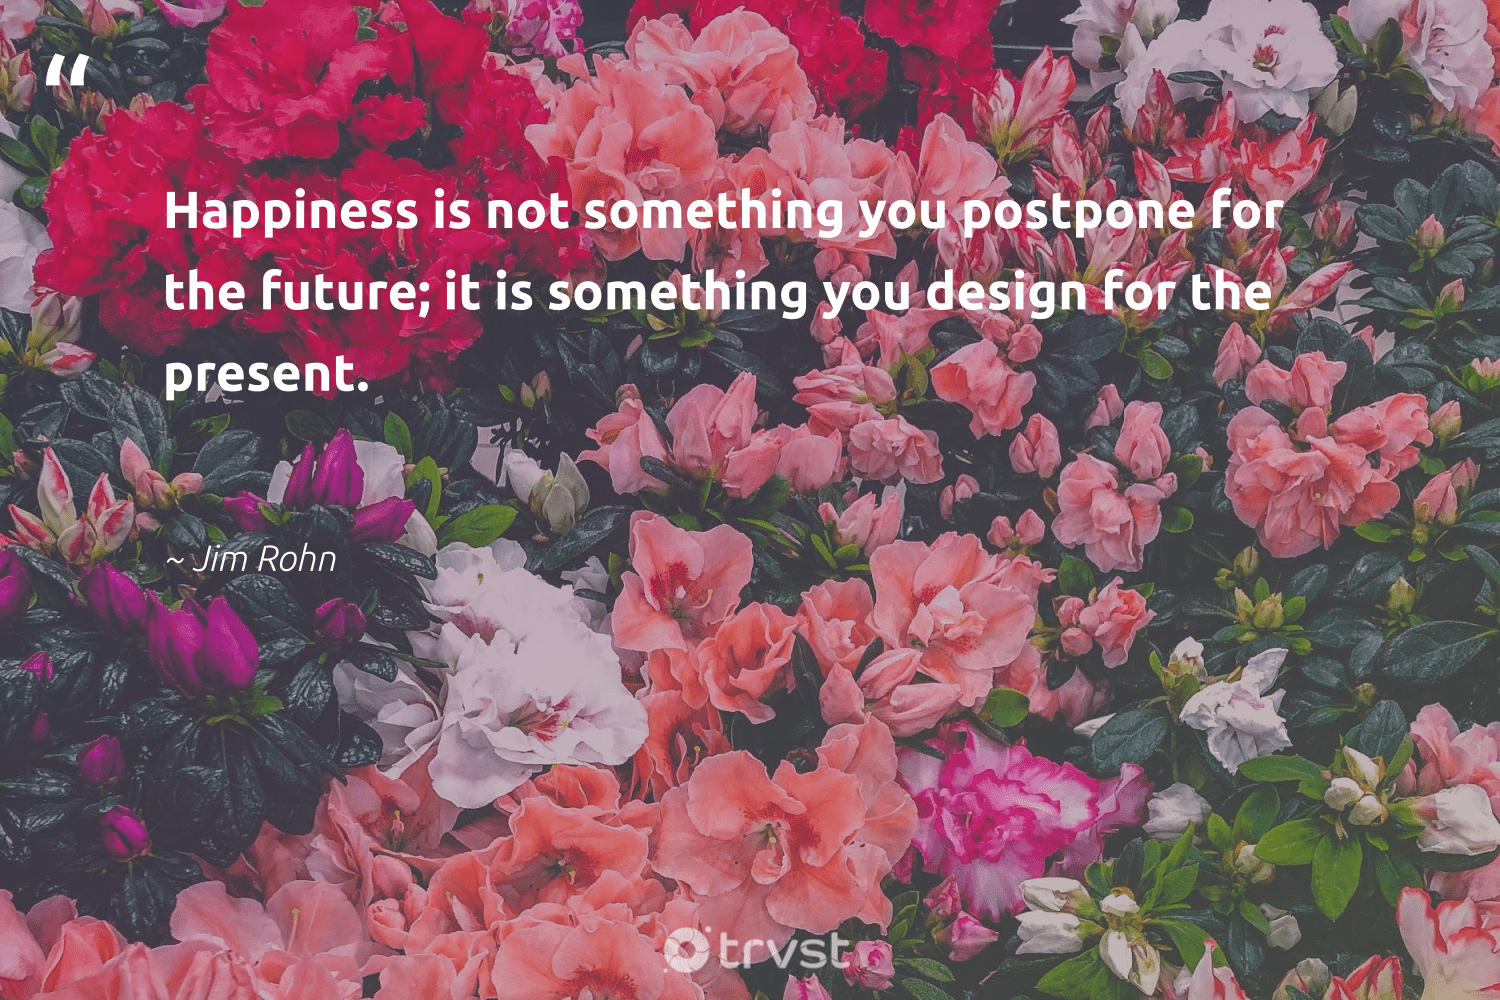 """""""Happiness is not something you postpone for the future; it is something you design for the present.""""  - Jim Rohn #trvst #quotes #happiness #design #sketchbook #nevergiveup #softskills #takeaction #designinspiration #begreat #futureofwork #socialimpact"""